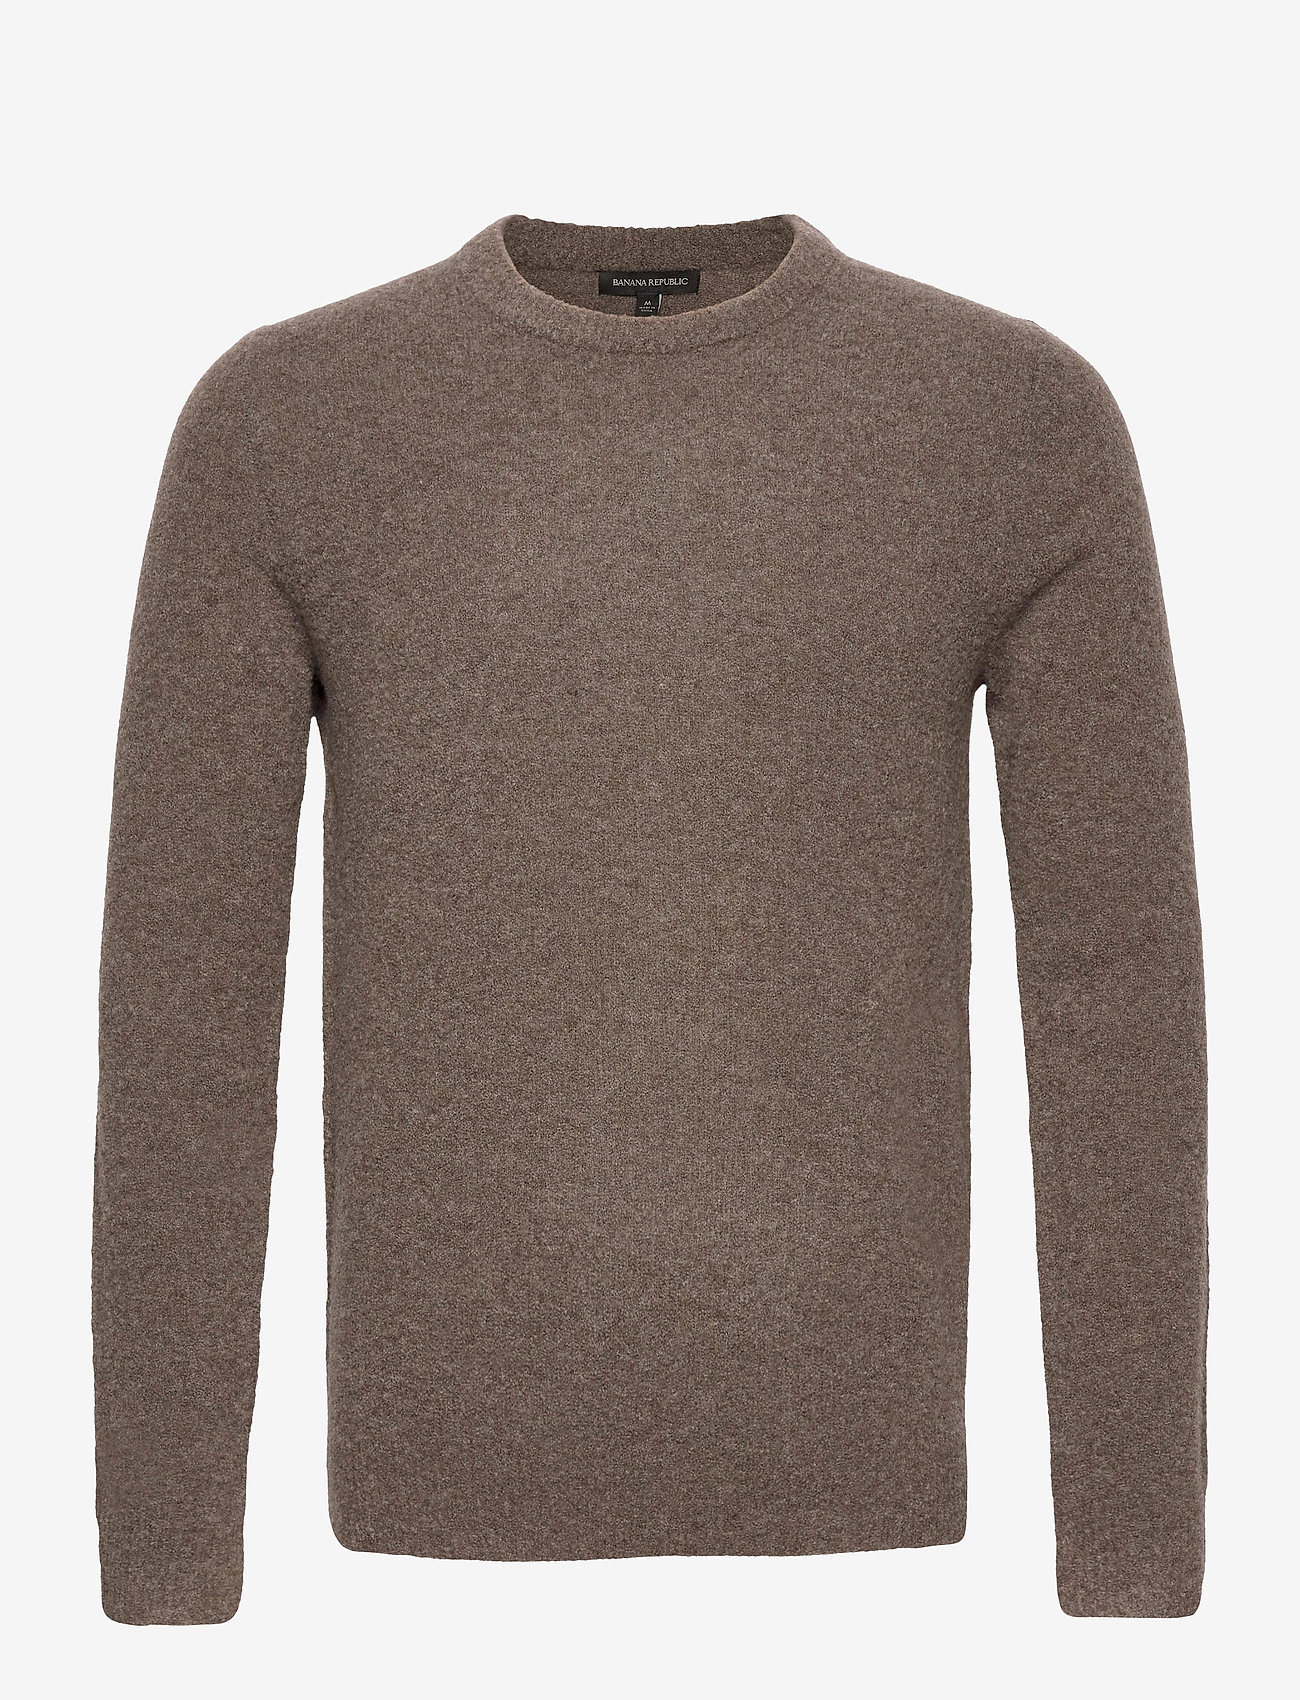 Banana Republic - Wool-Blend Crew-Neck Sweater - basic knitwear - soft taupe - 0